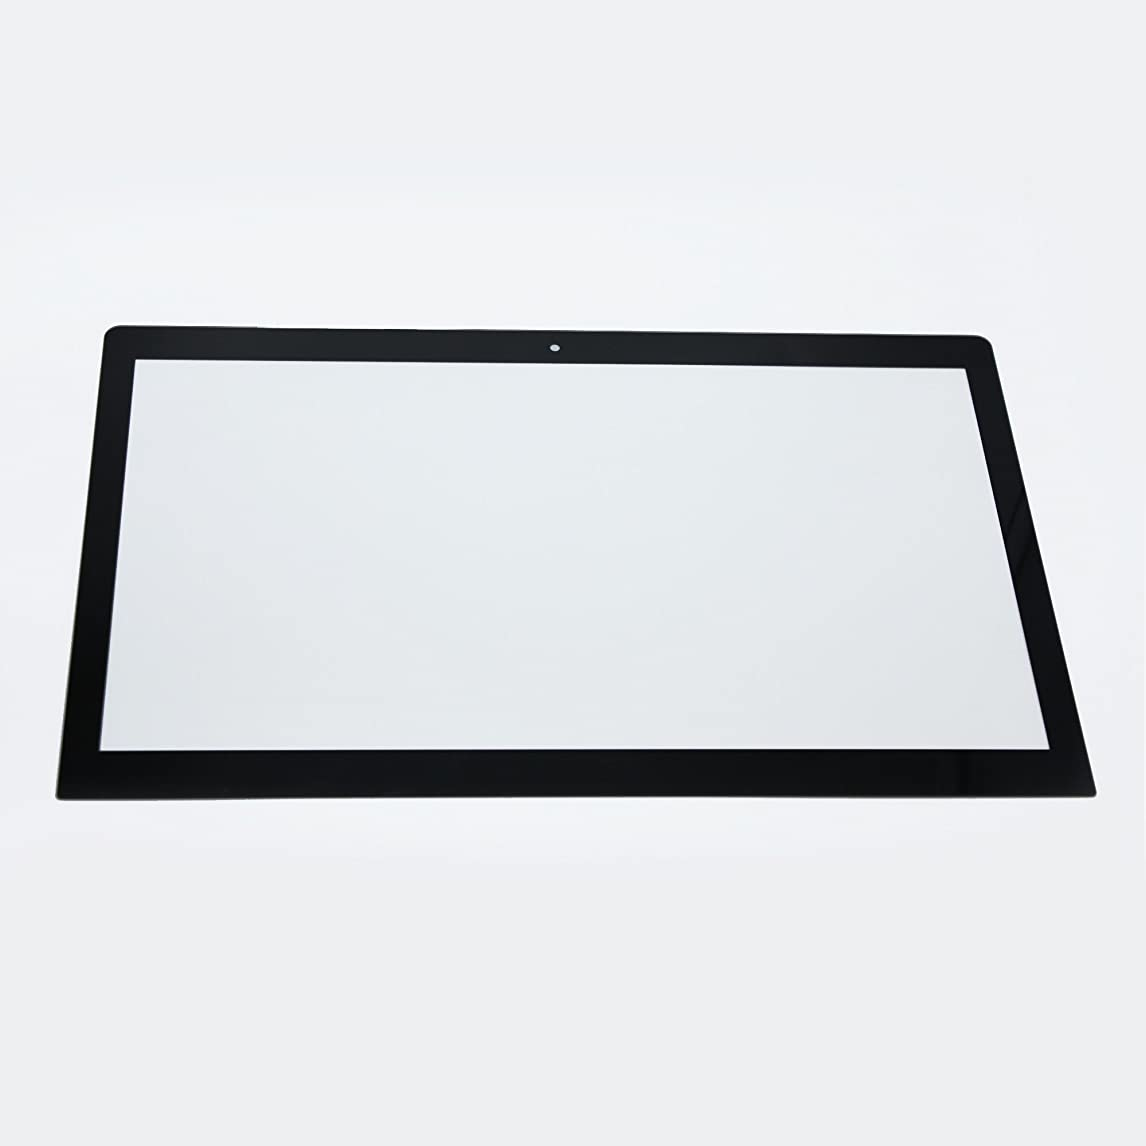 LCDOLED 15.6'' Touch Screen Glass +Digitizer for Asus Transformer TP550L TP550LA TP550LD(FP-TPAY15611A-01X verison ONLY) kjblb56204485509